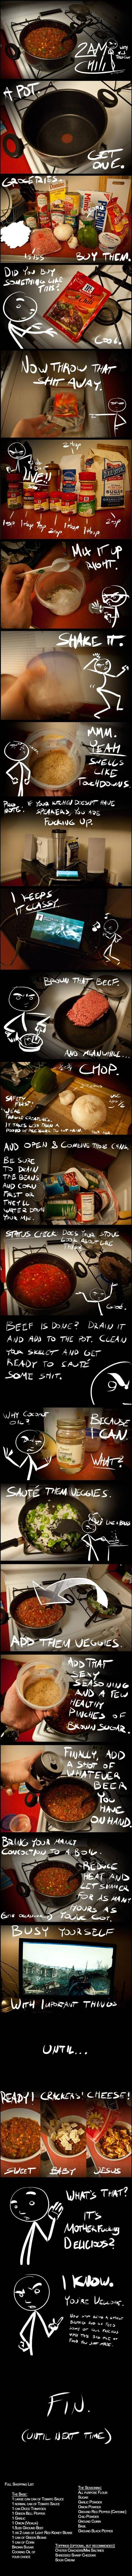 Been a while since I've seen some cooking comically on here. And it's nearly midnight here in Chicago. Perfect time to gather ingredients for 2 AM chili.